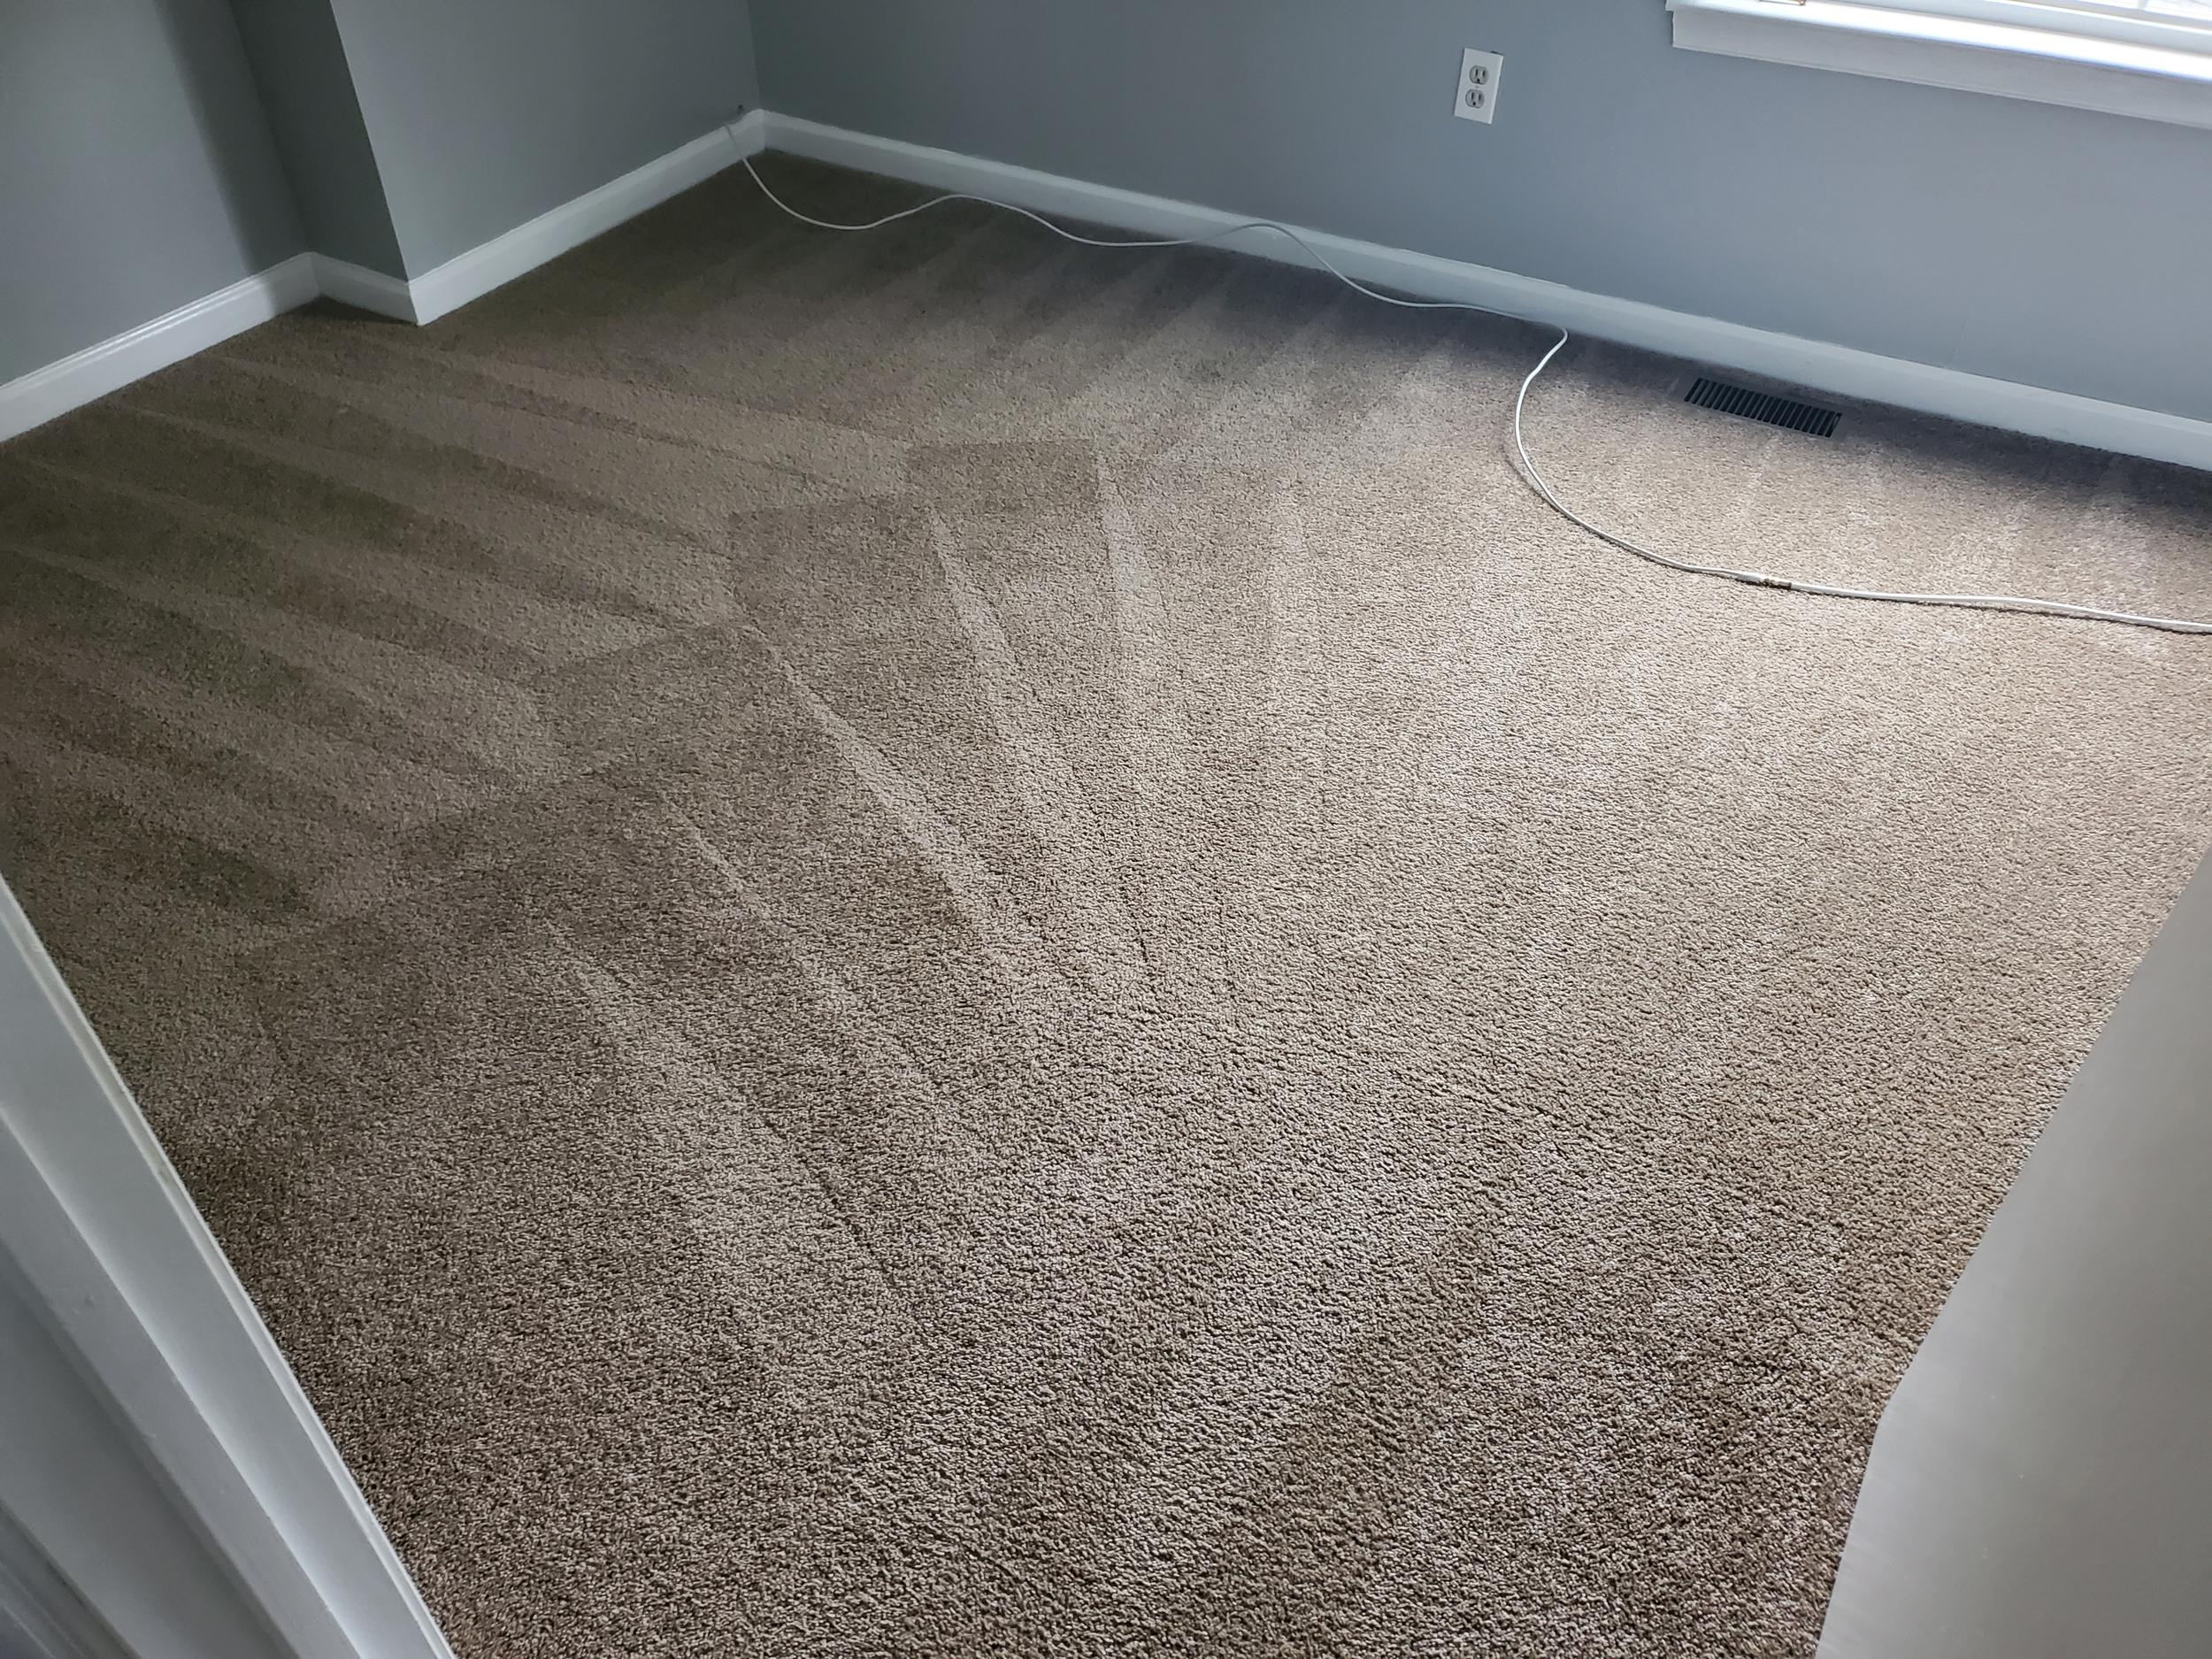 home carpet after it's been cleaned